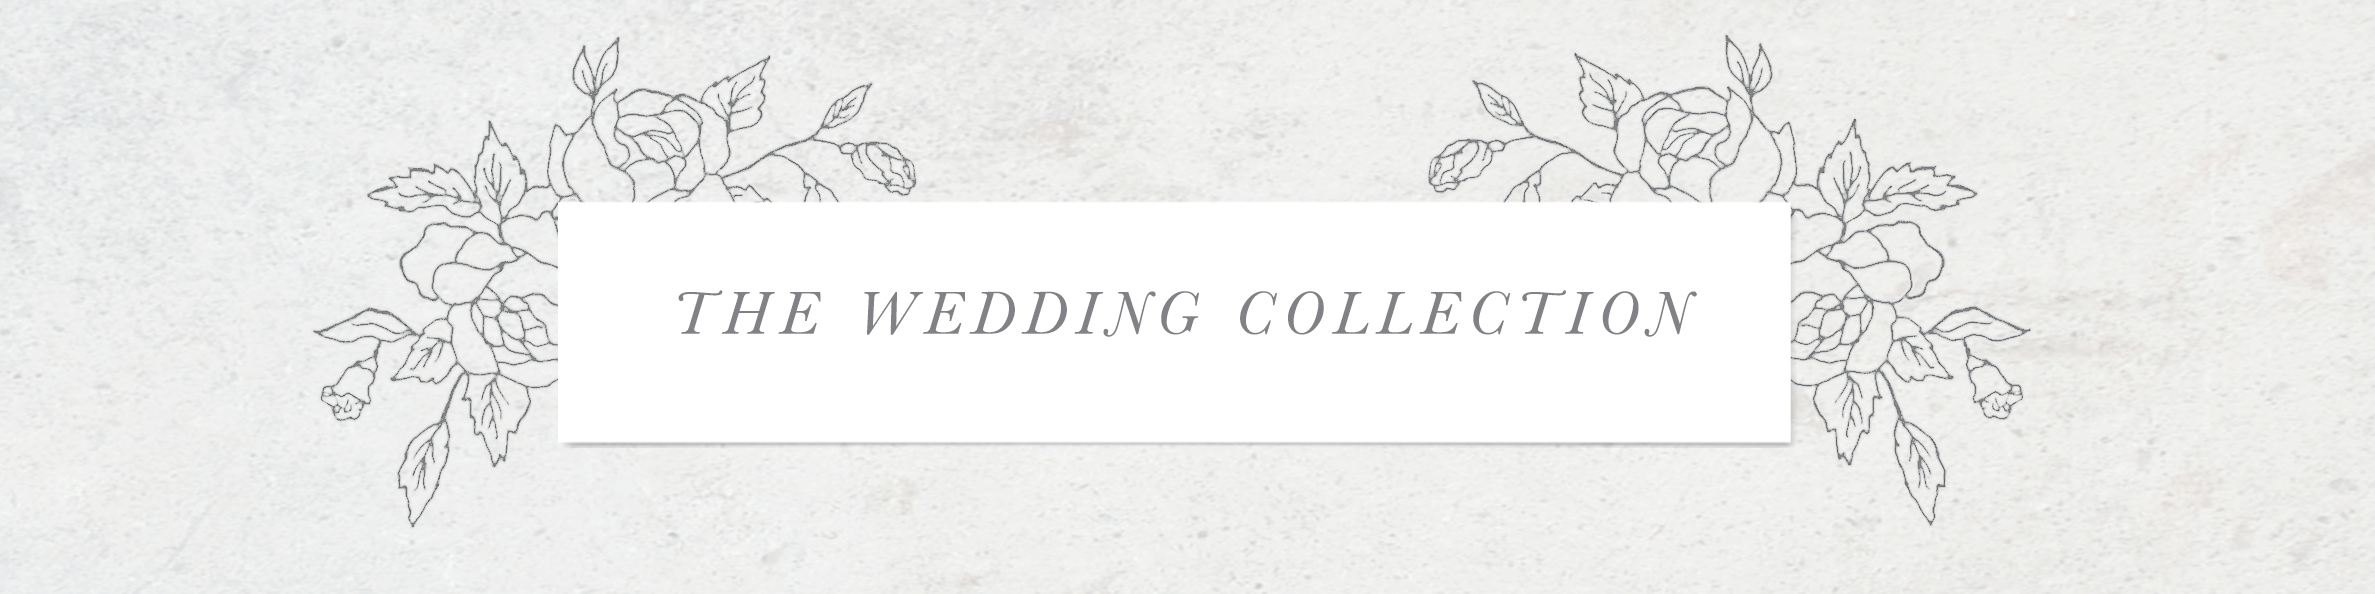 Wedding Collection Emily Rose Ink.png